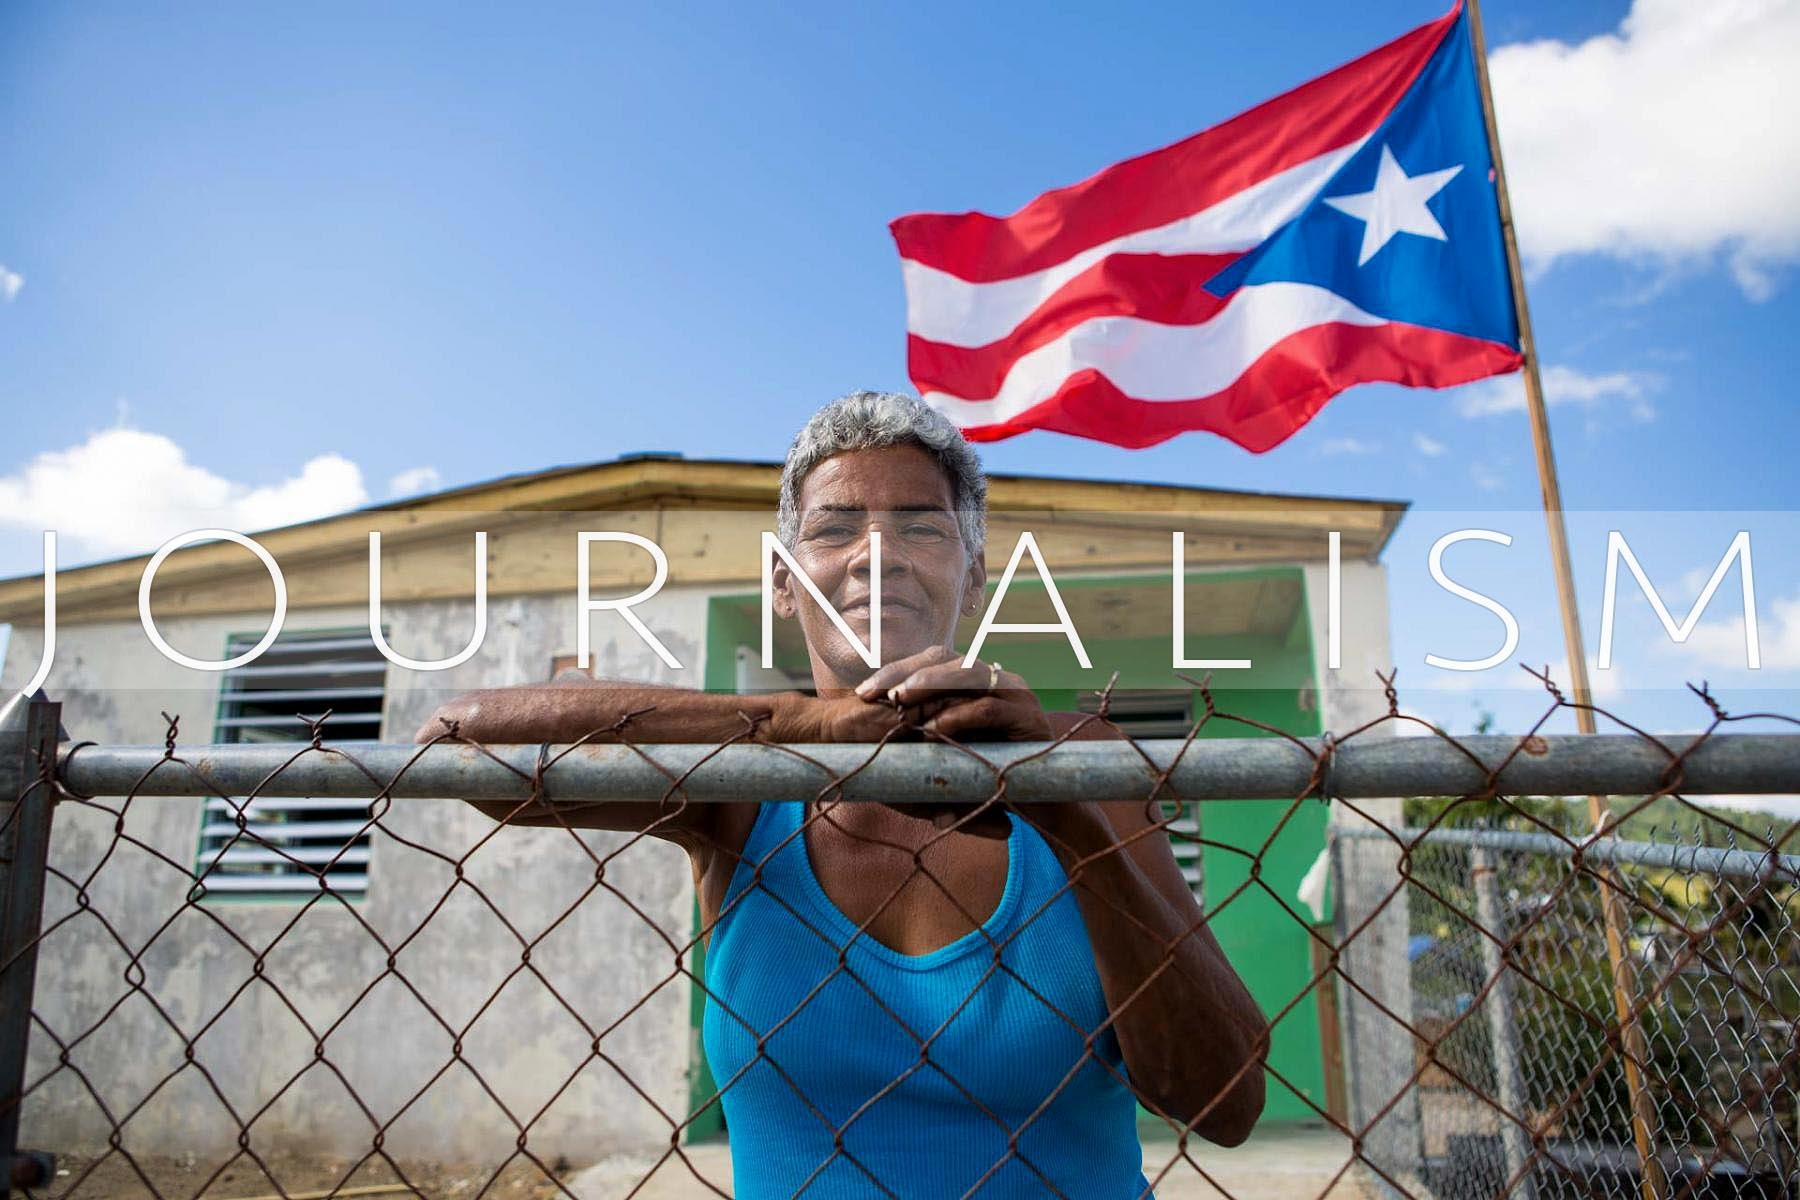 Puerto Rico freelance press photojournalist photographer